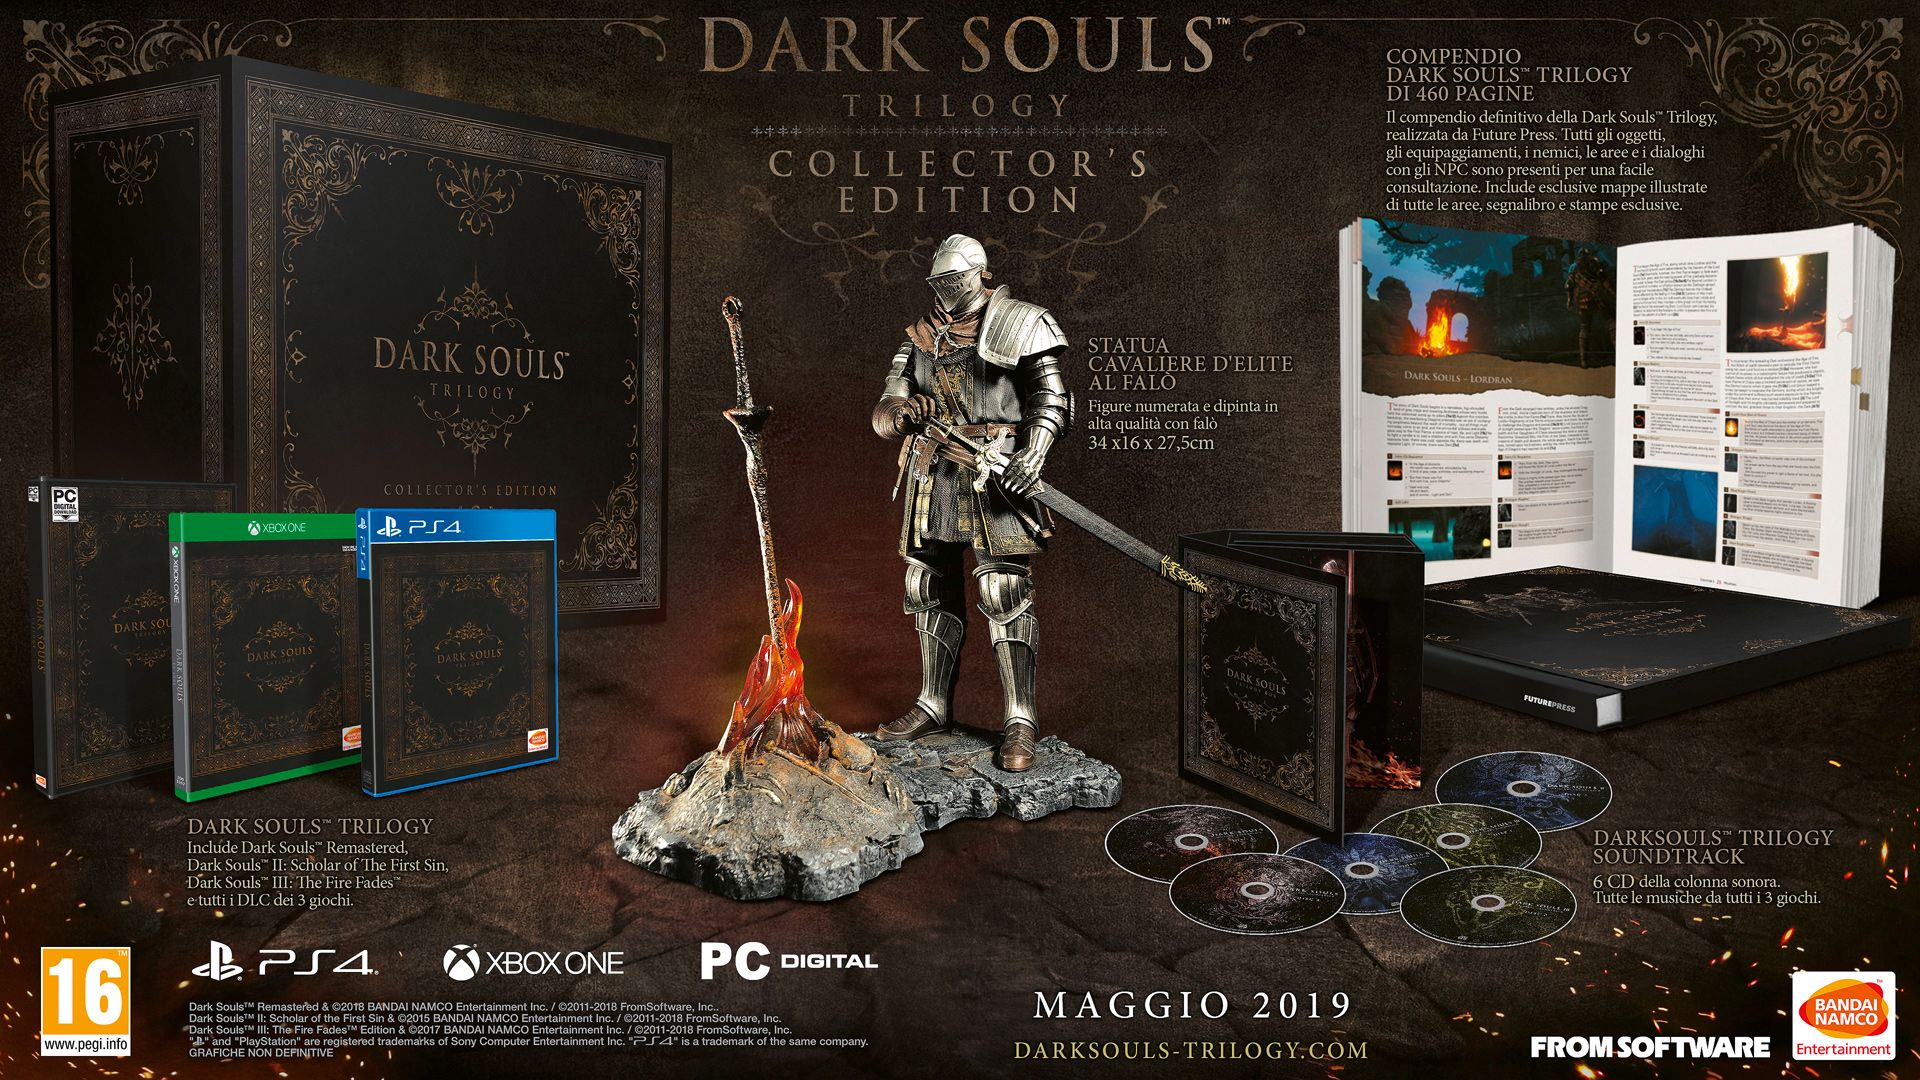 Dark Souls Trilogy - Collector Edition